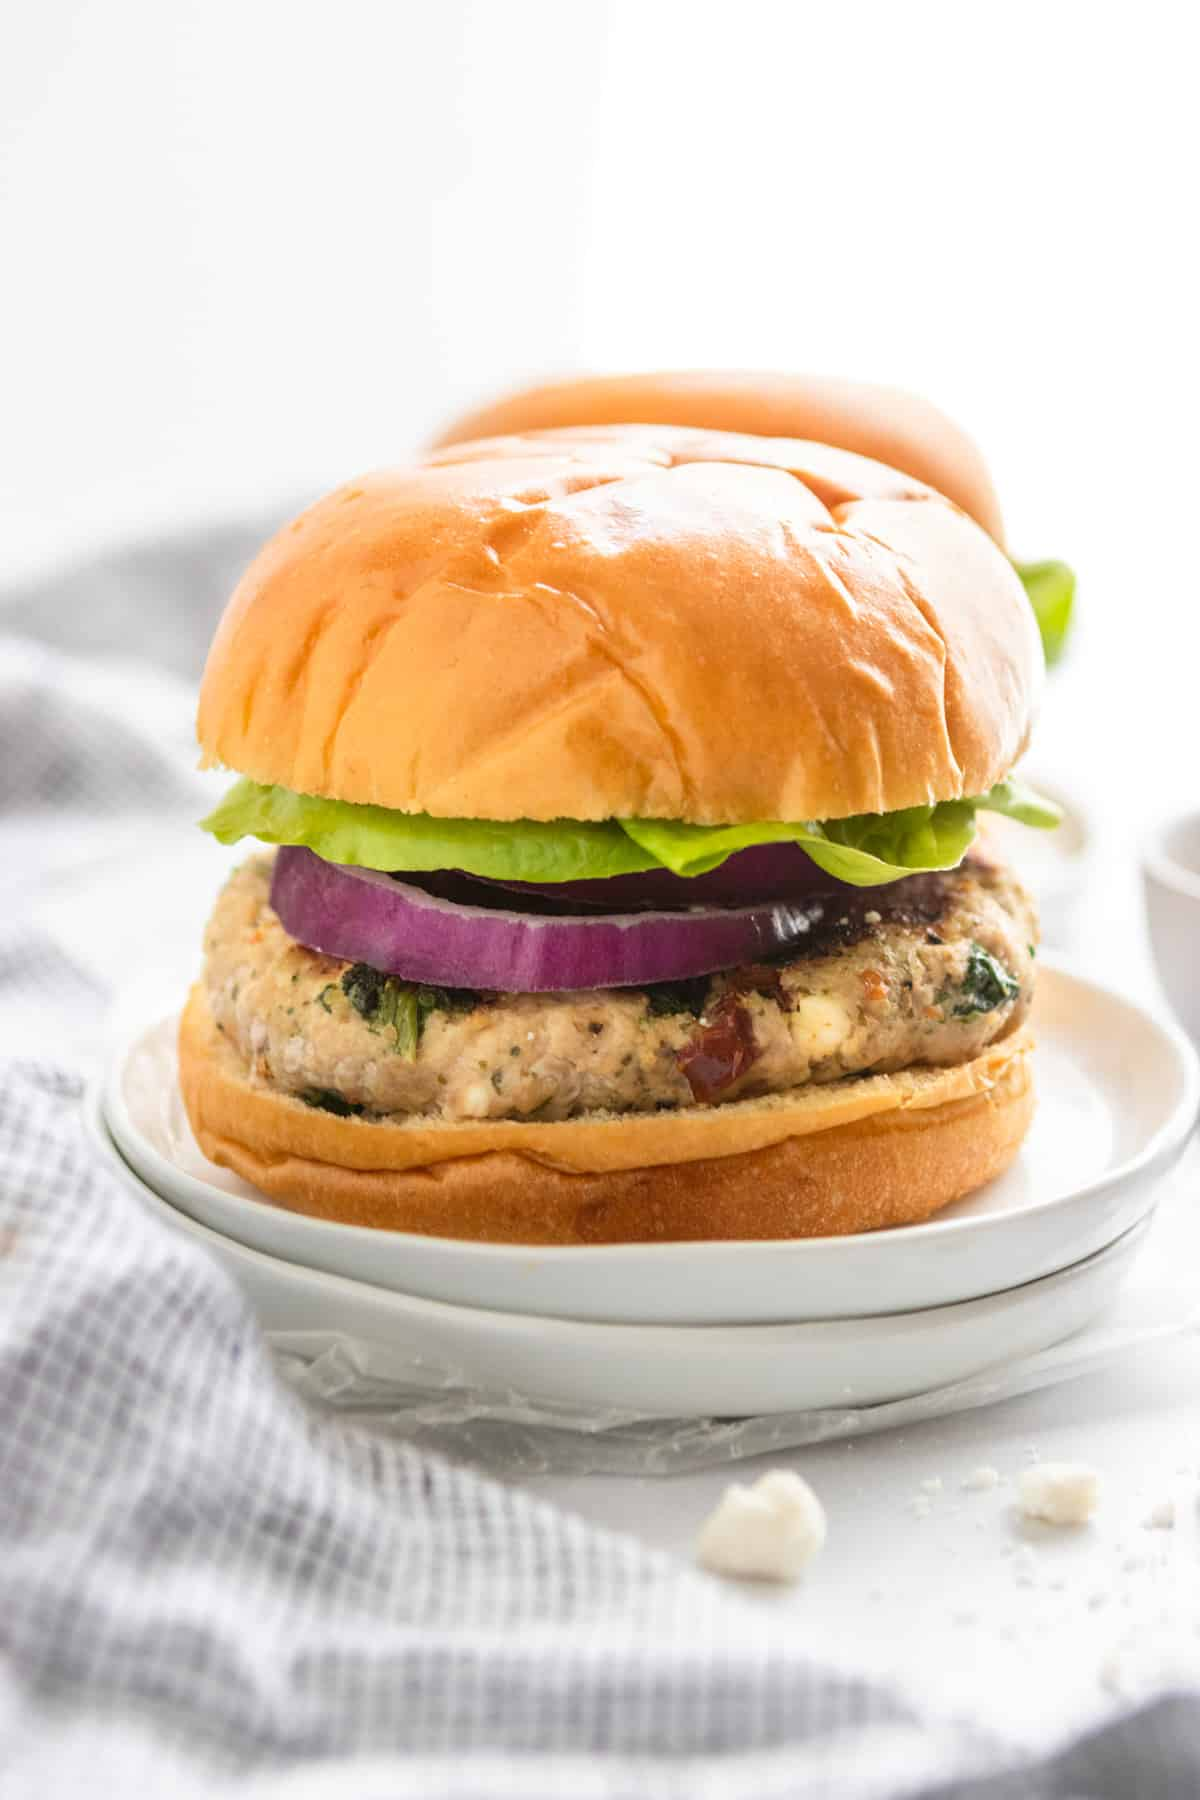 Sun-dried tomato feta turkey burger on bun with lettuce and onion.